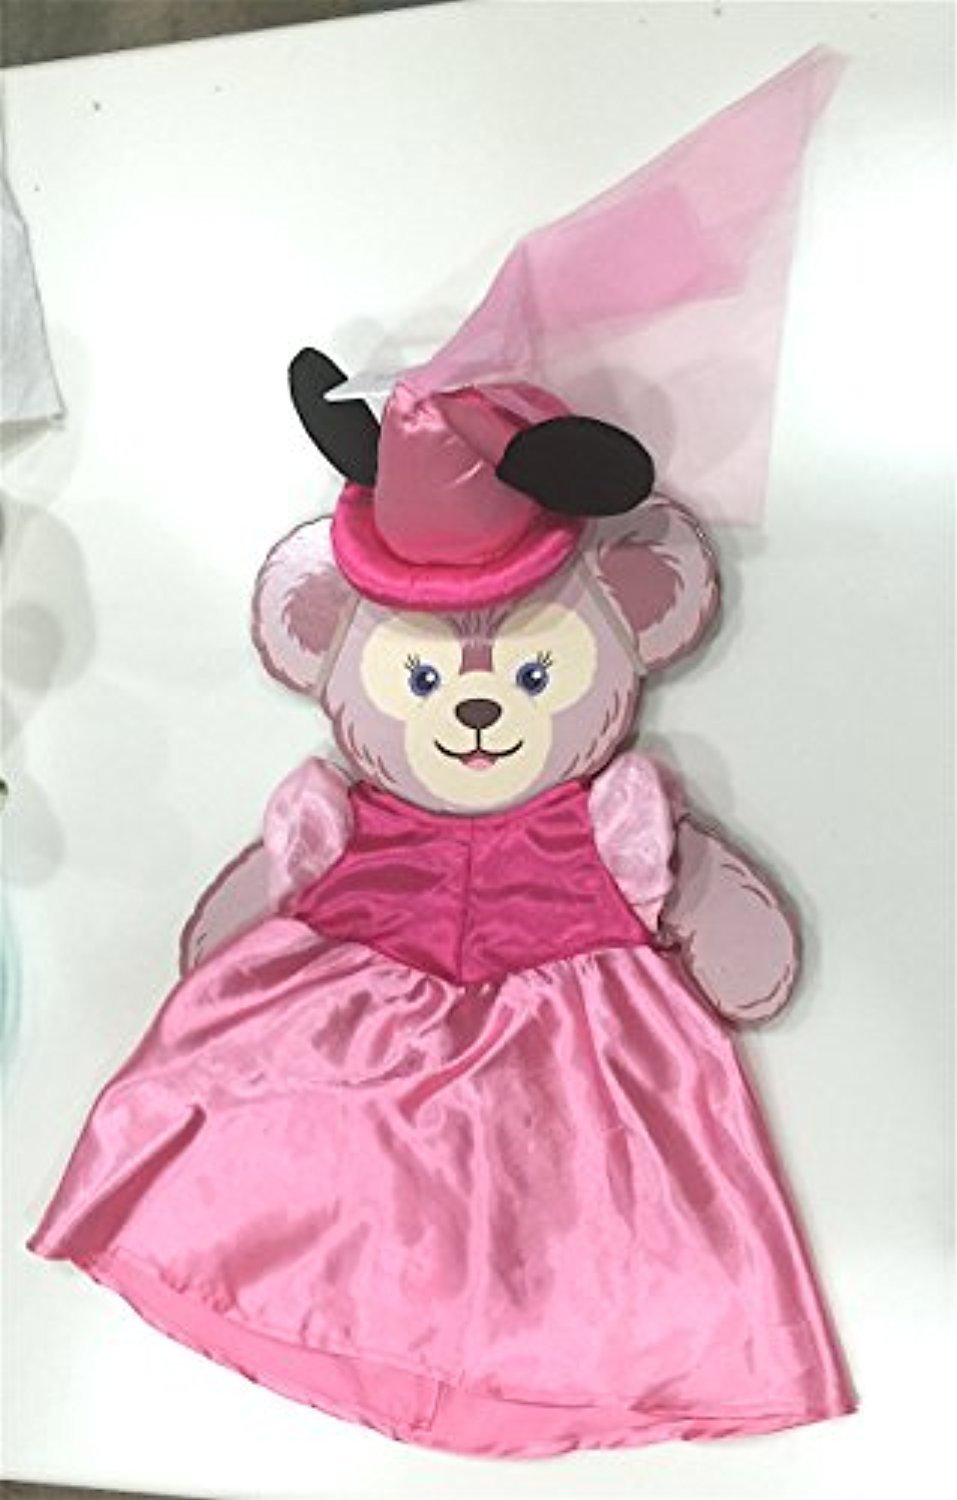 ◎送料込み◎ Disney Parks 17 in ShellieMay Duffy Friend